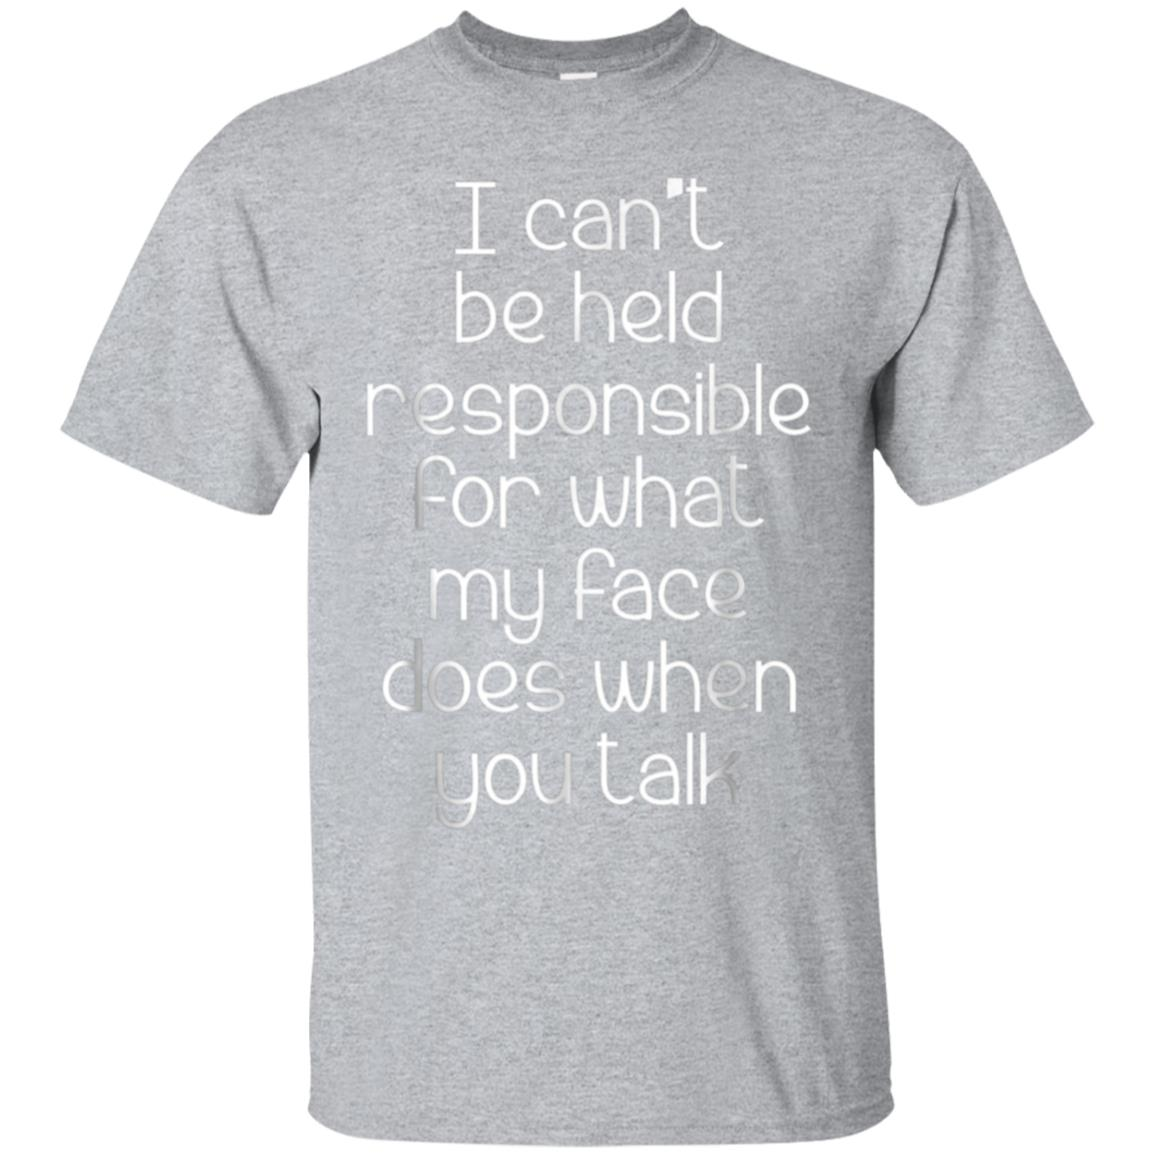 I Can't Be Held Responsible T-Shirt funny saying sarcastic 99promocode